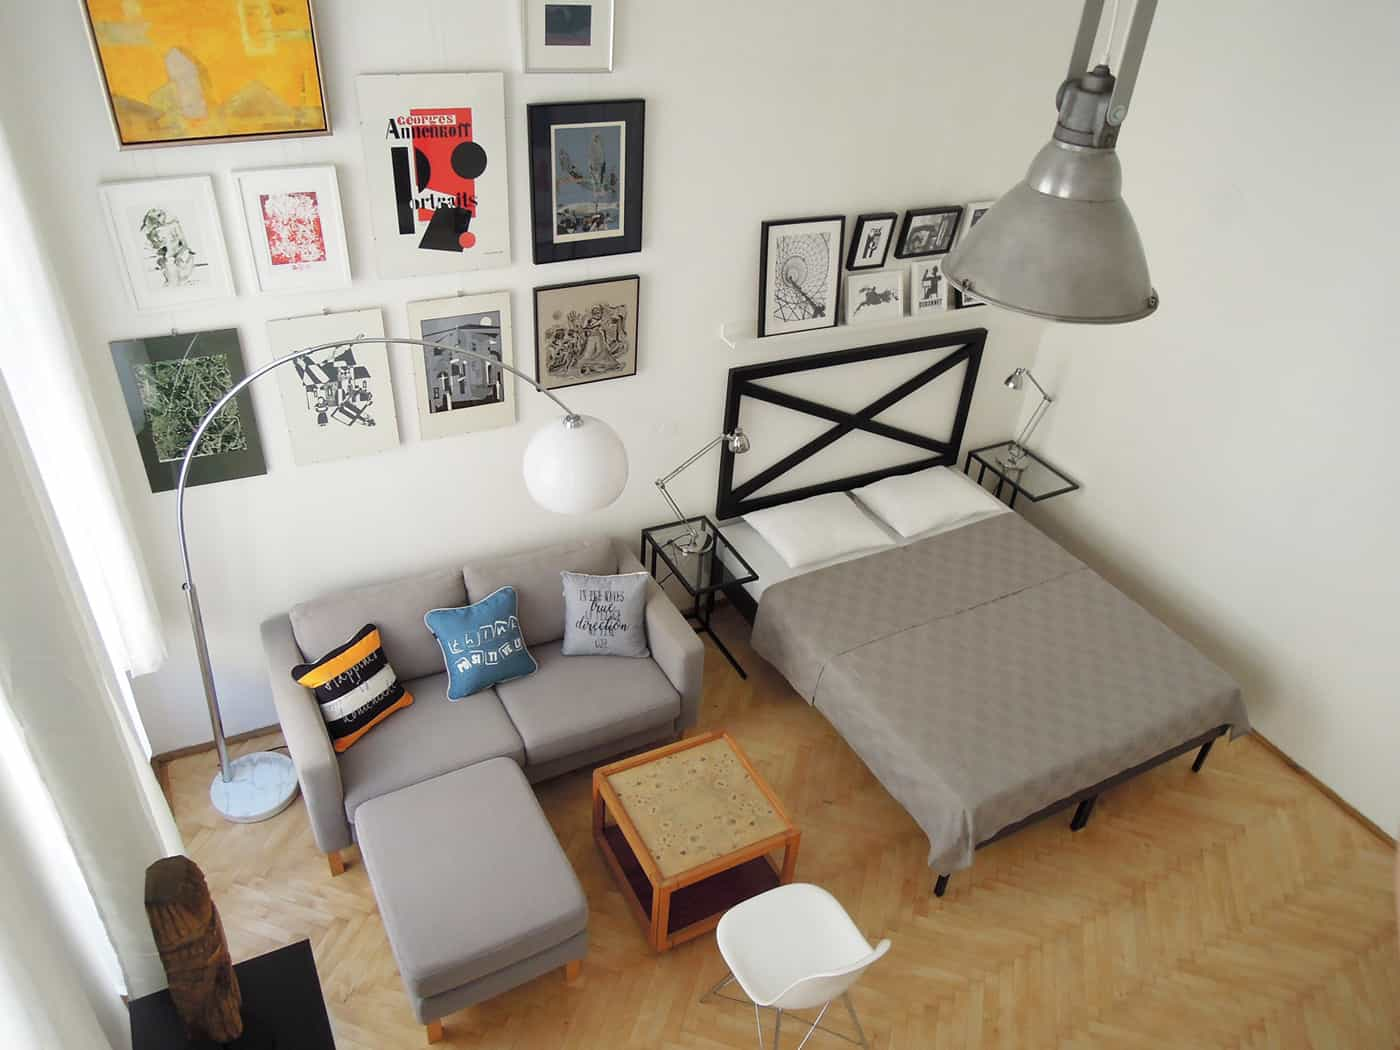 Studio apartment in Budapest